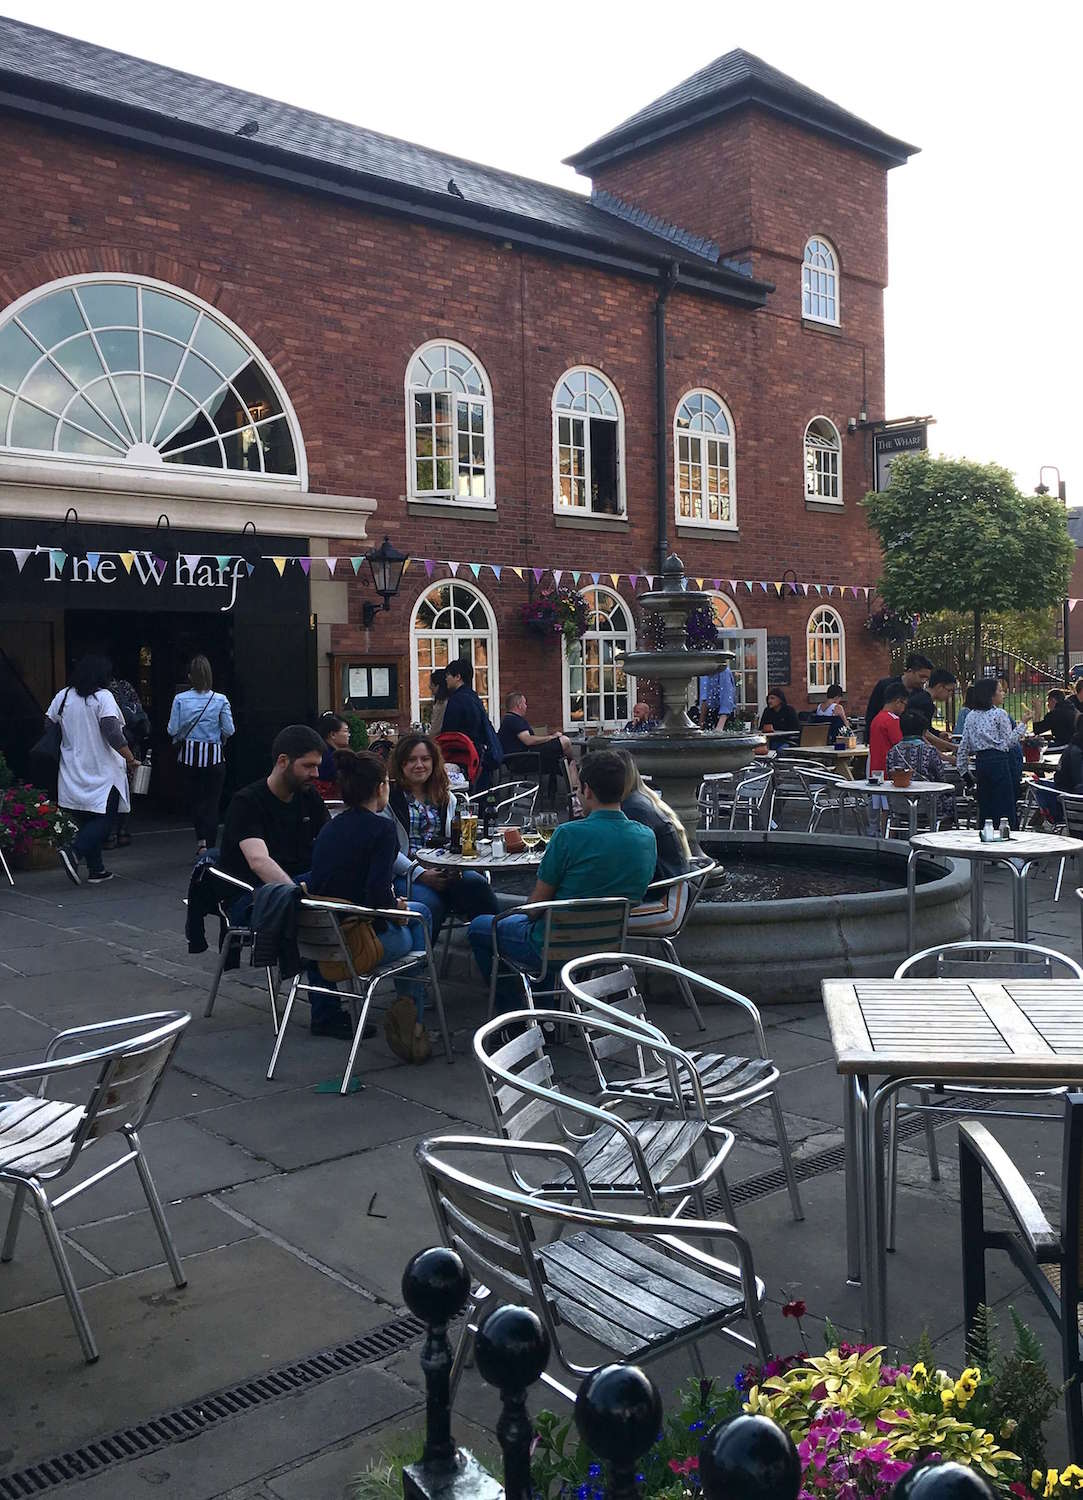 The Wharf is a brick restaurant in Manchester, UK with outdoor tables and chairs that people are sitting at.